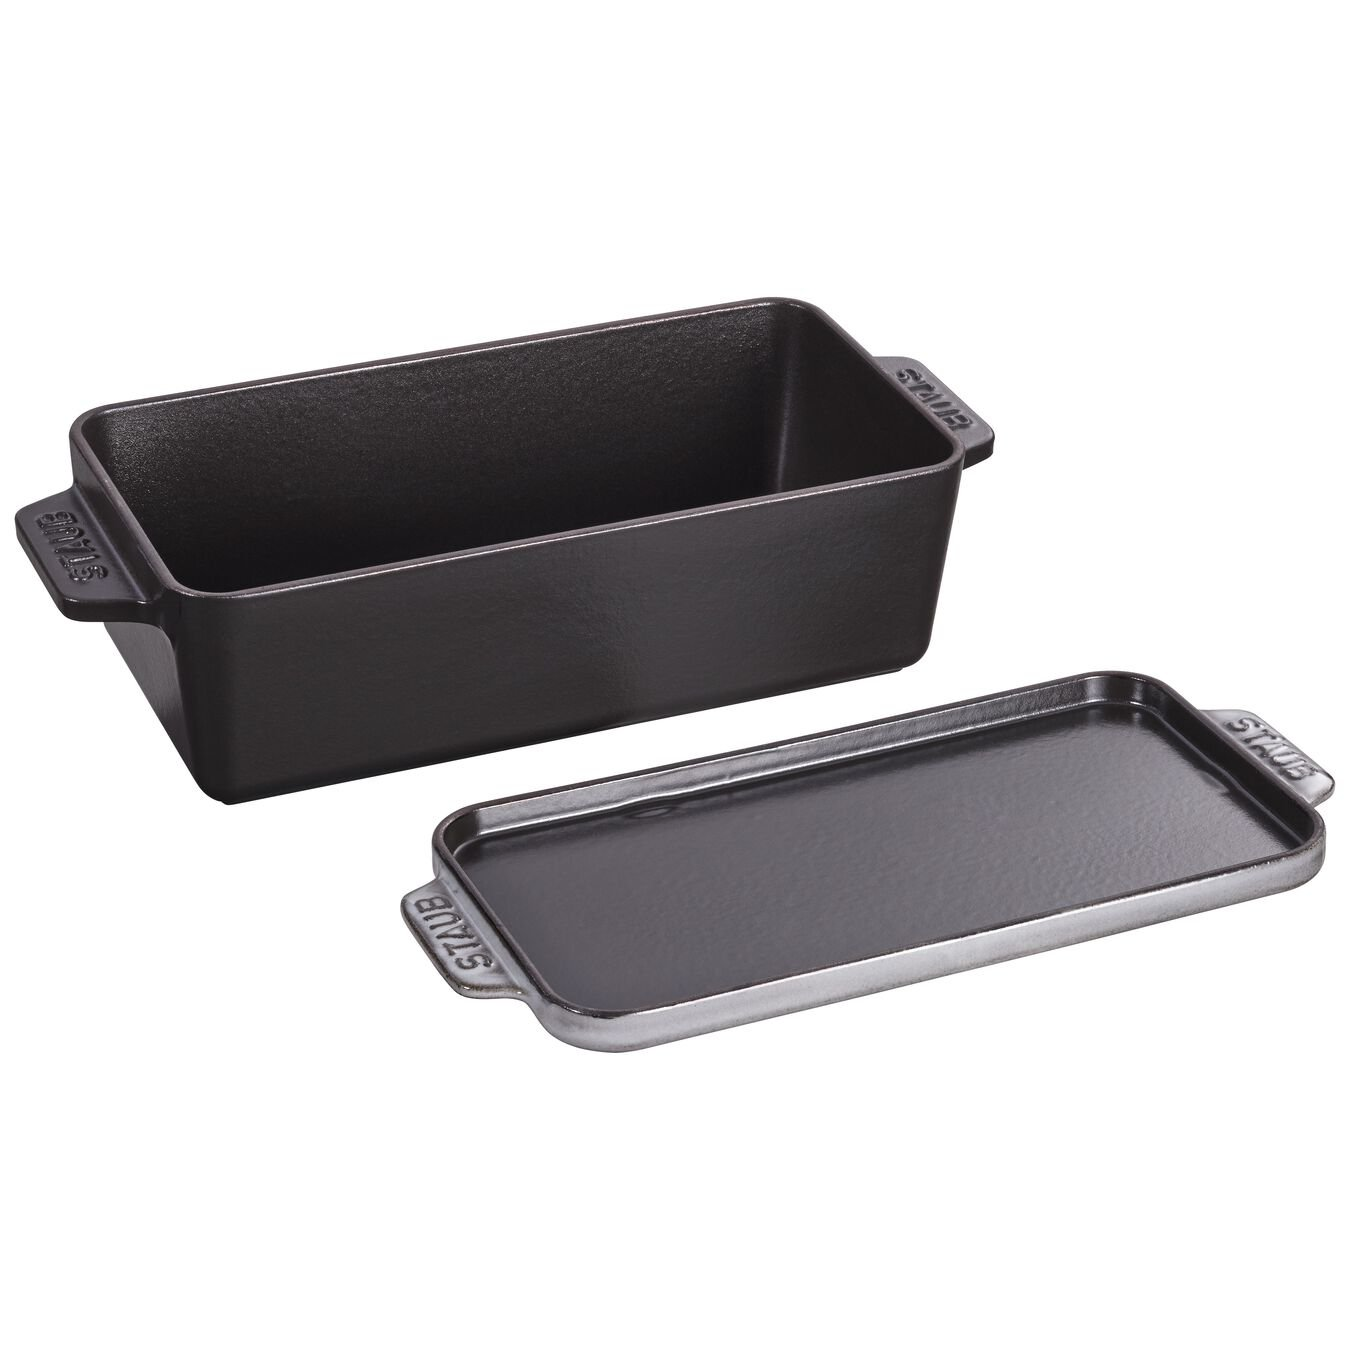 12.75-inch x 5.25-inch Covered Loaf Pan - Graphite Grey,,large 2